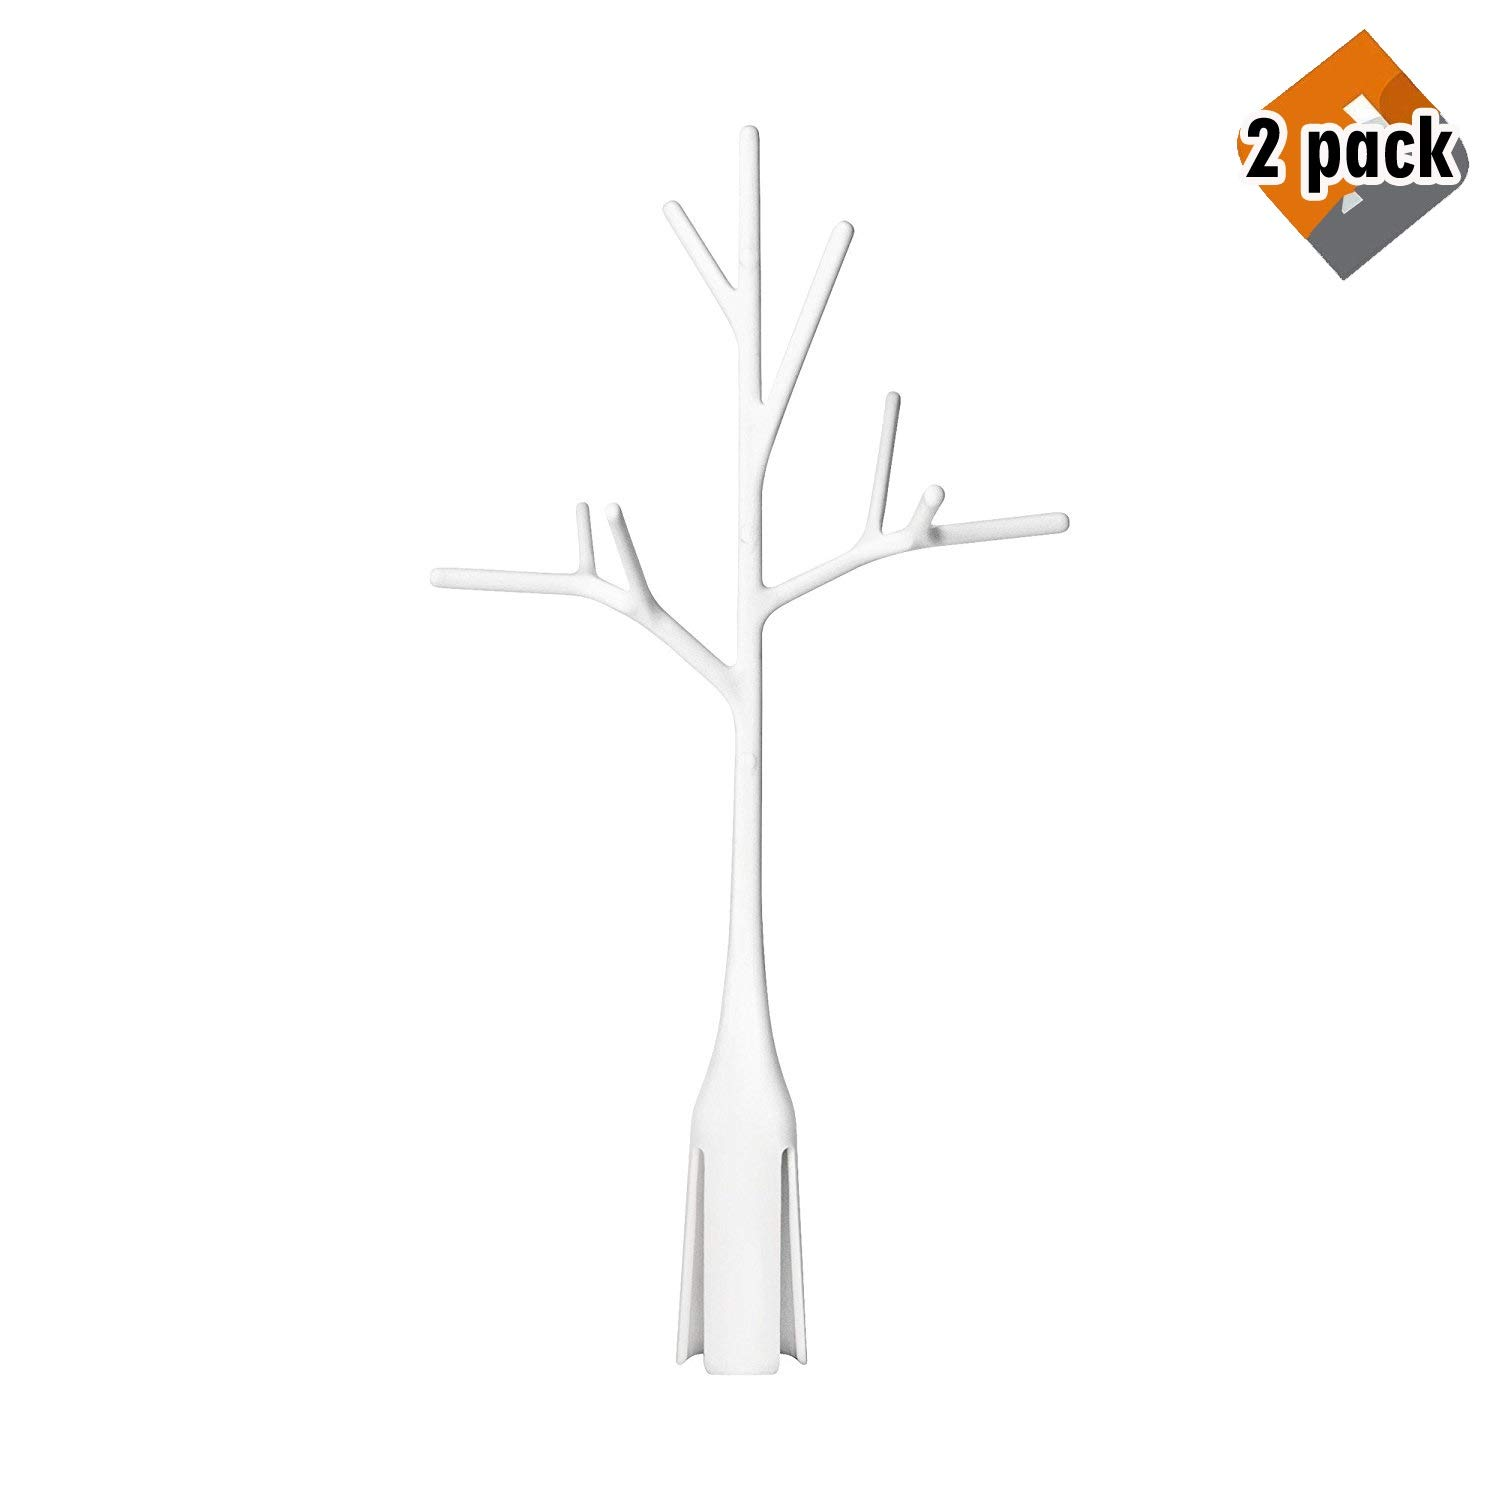 Boon Twig Grass and Lawn Drying Rack Accessory, White,Twig White (2 Pack) by Boon